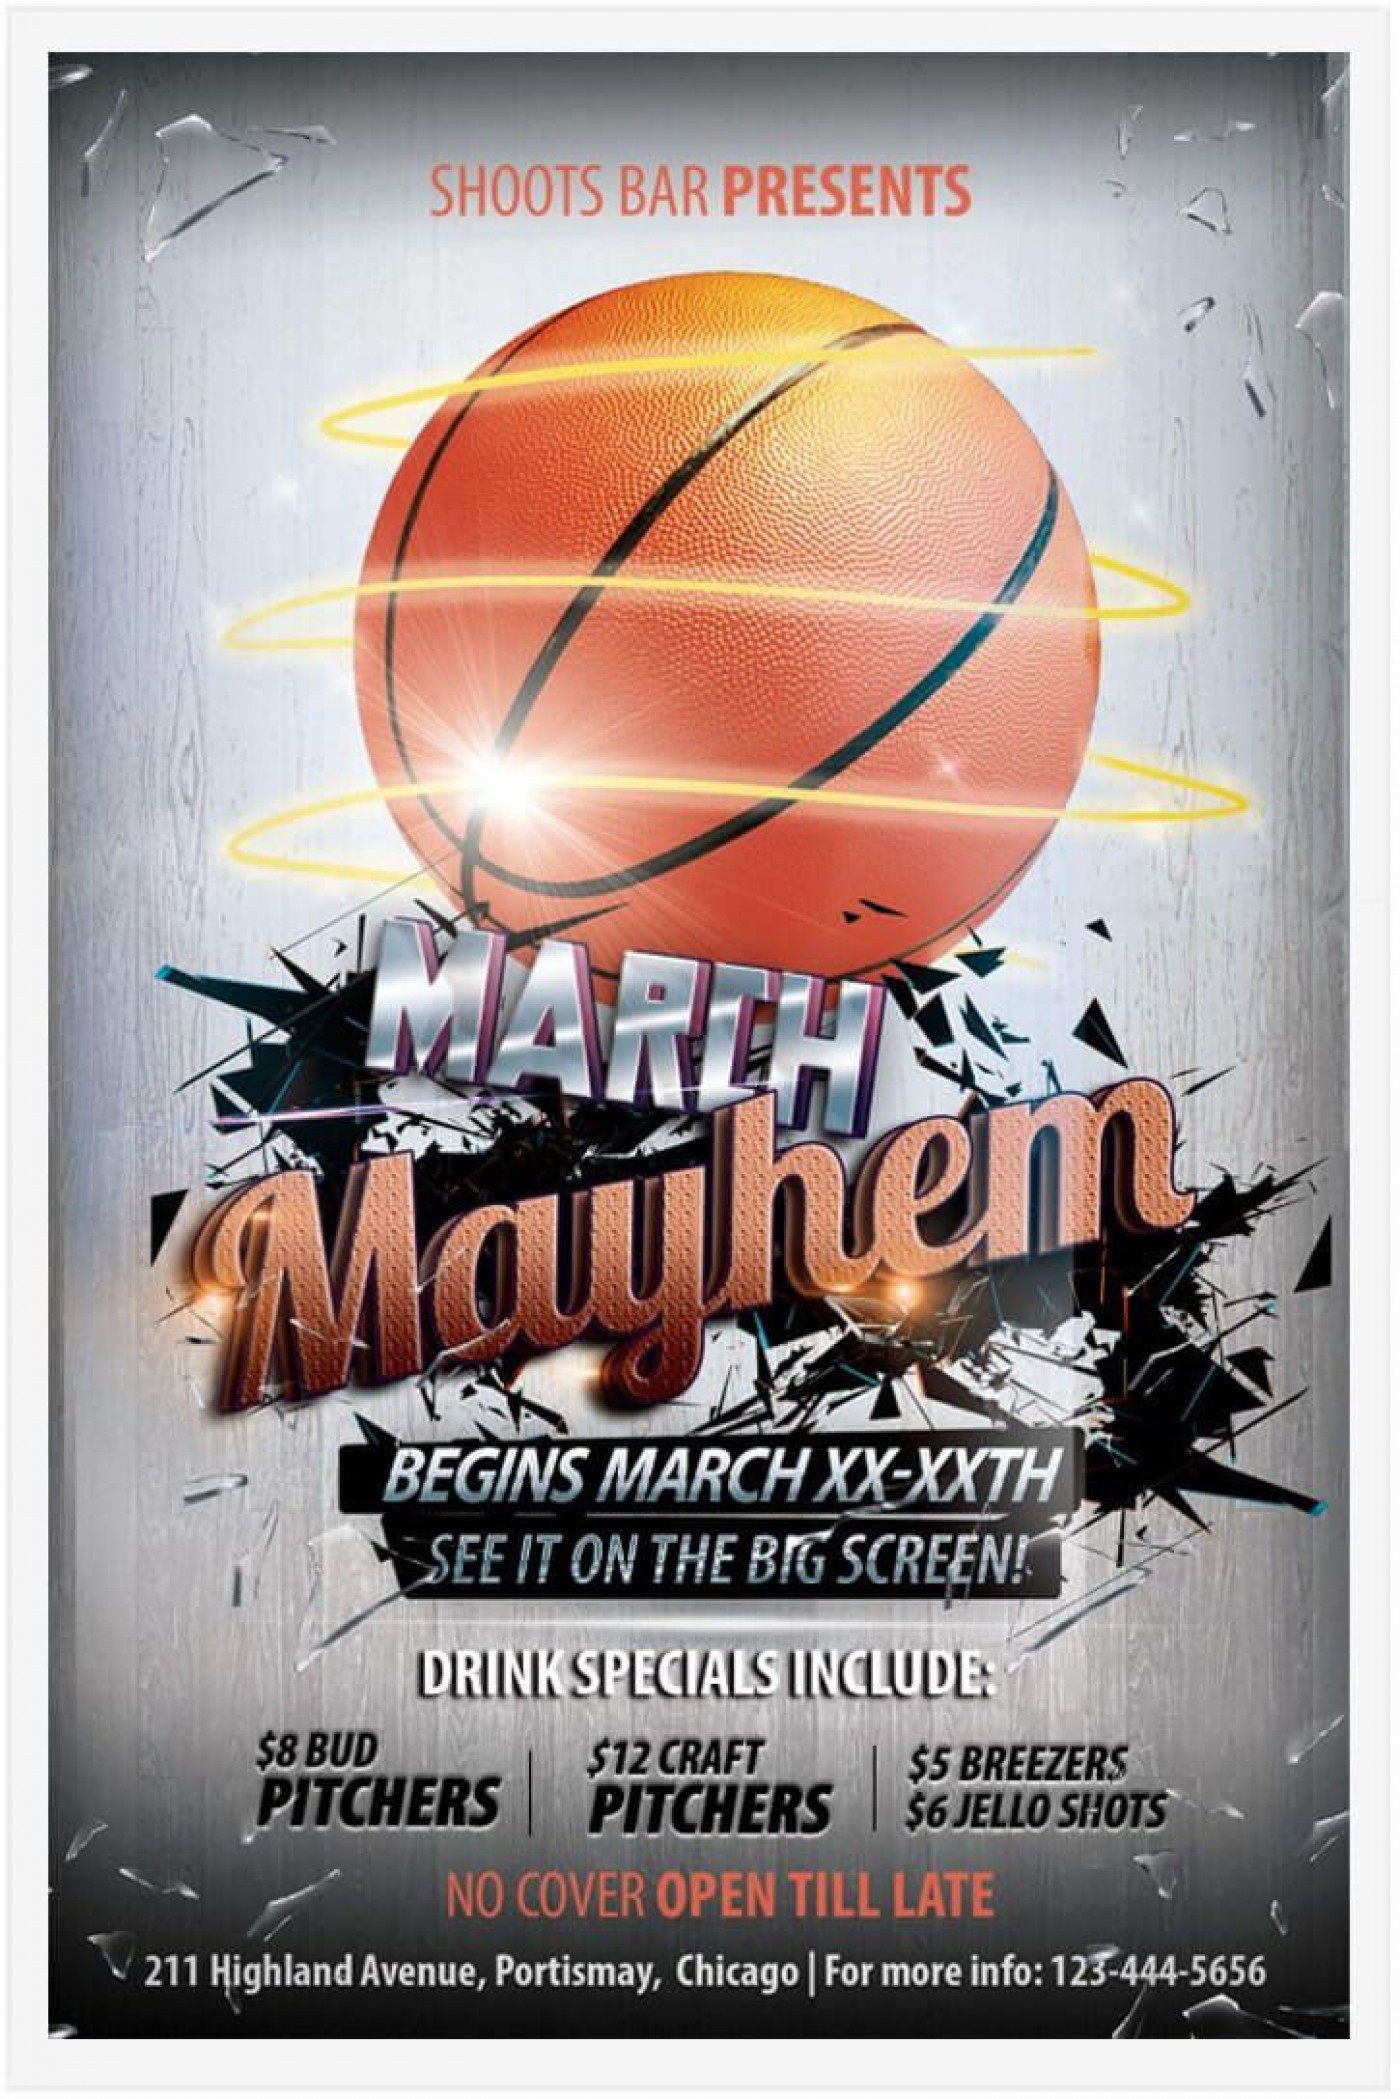 009 Breathtaking Free Basketball Flyer Template High Resolution  Game 3 On Tournament Word1400